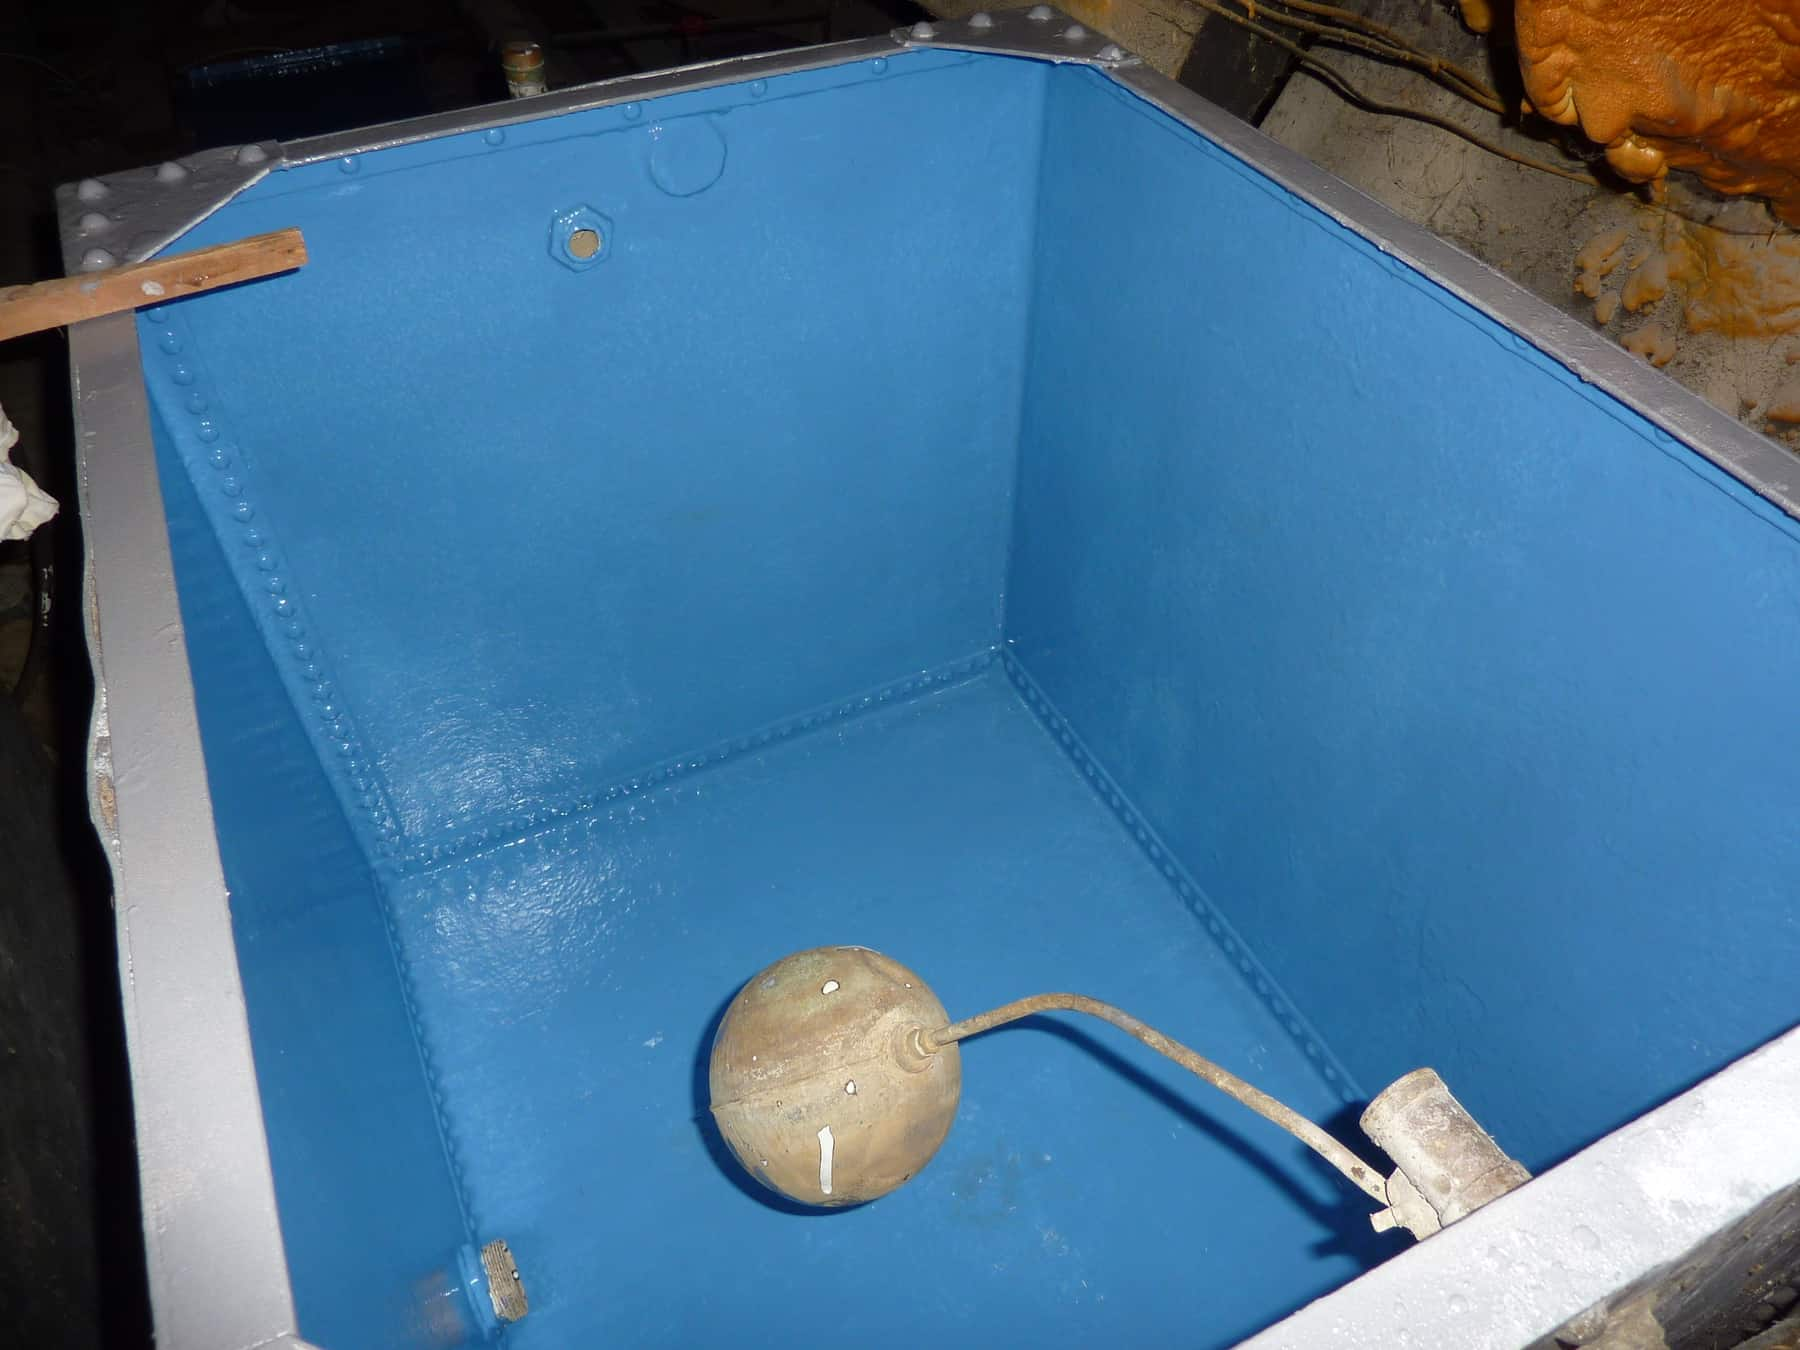 potable water tank internals painted in blue